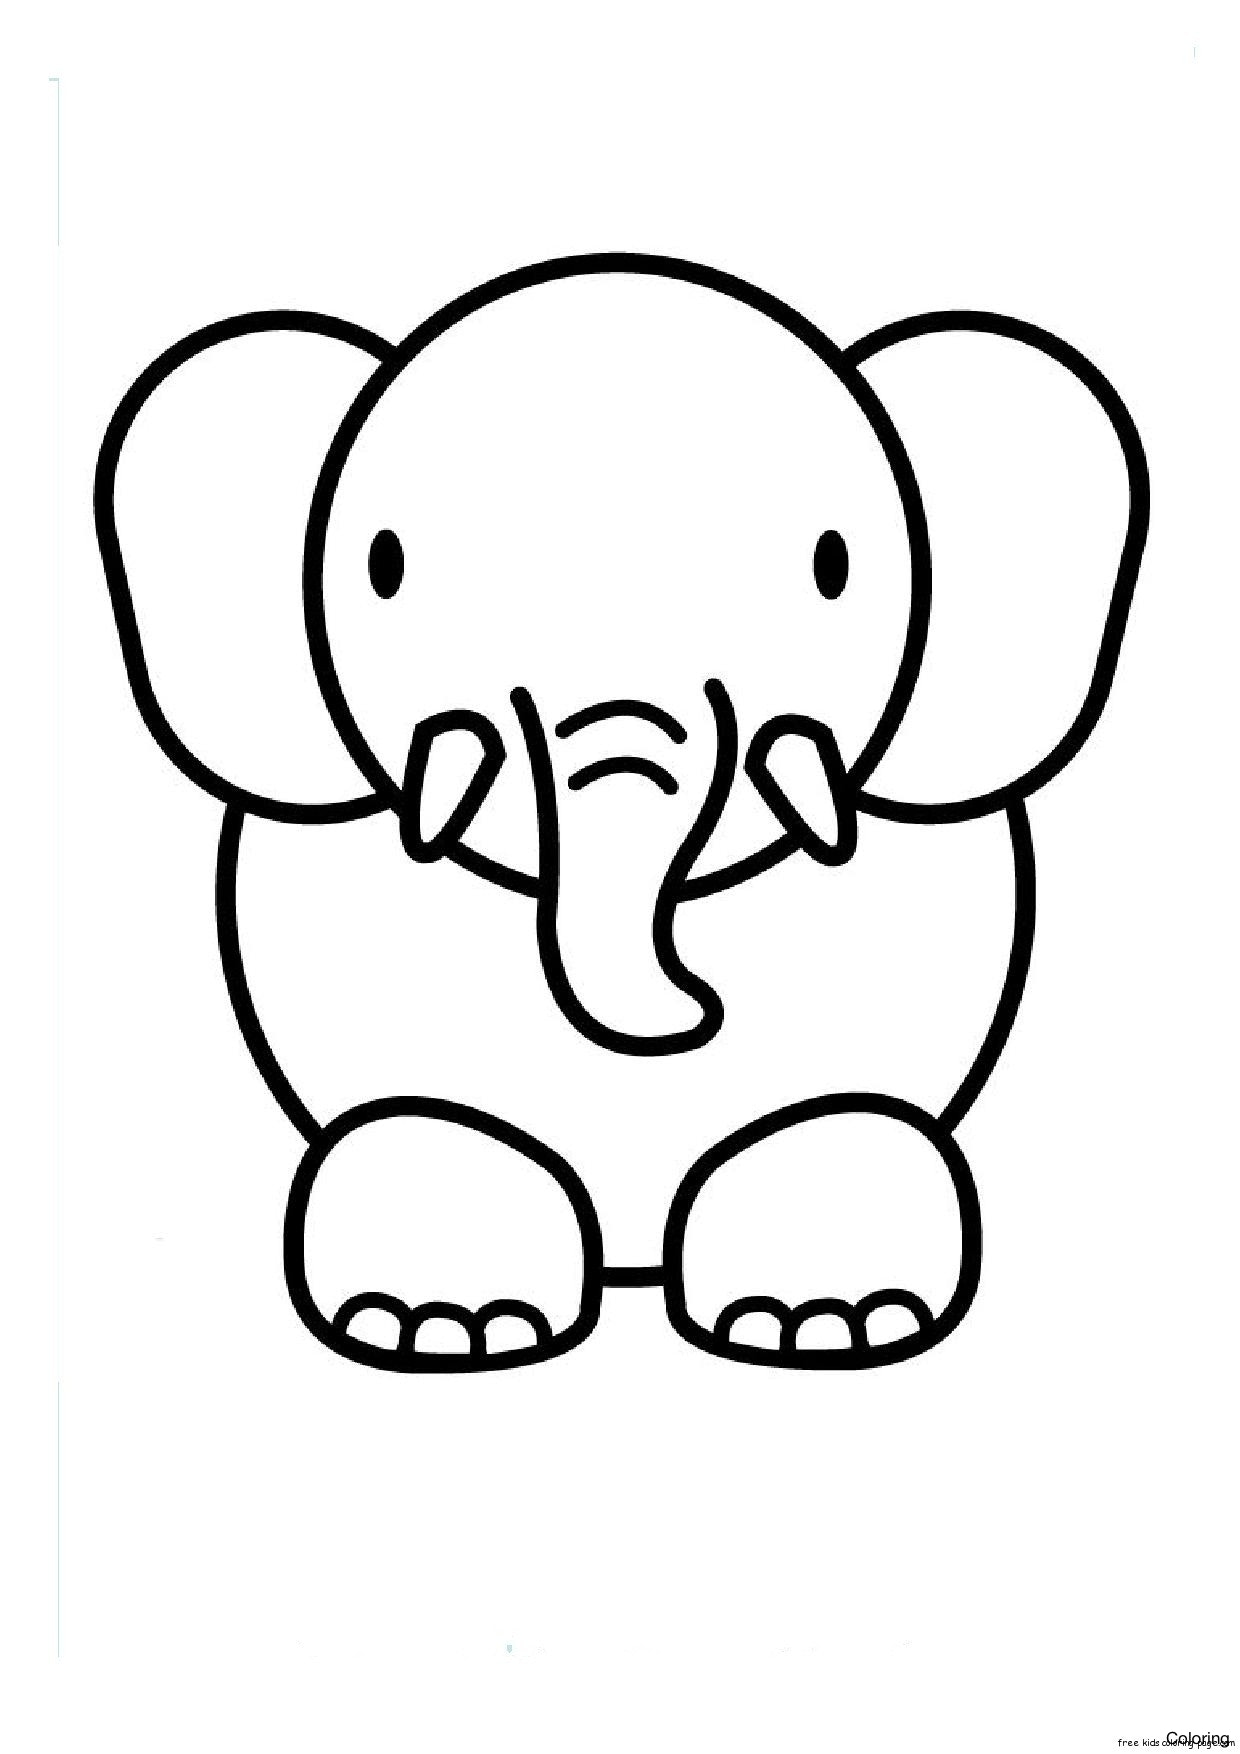 Free Drawing For Children at GetDrawings com | Free for personal use